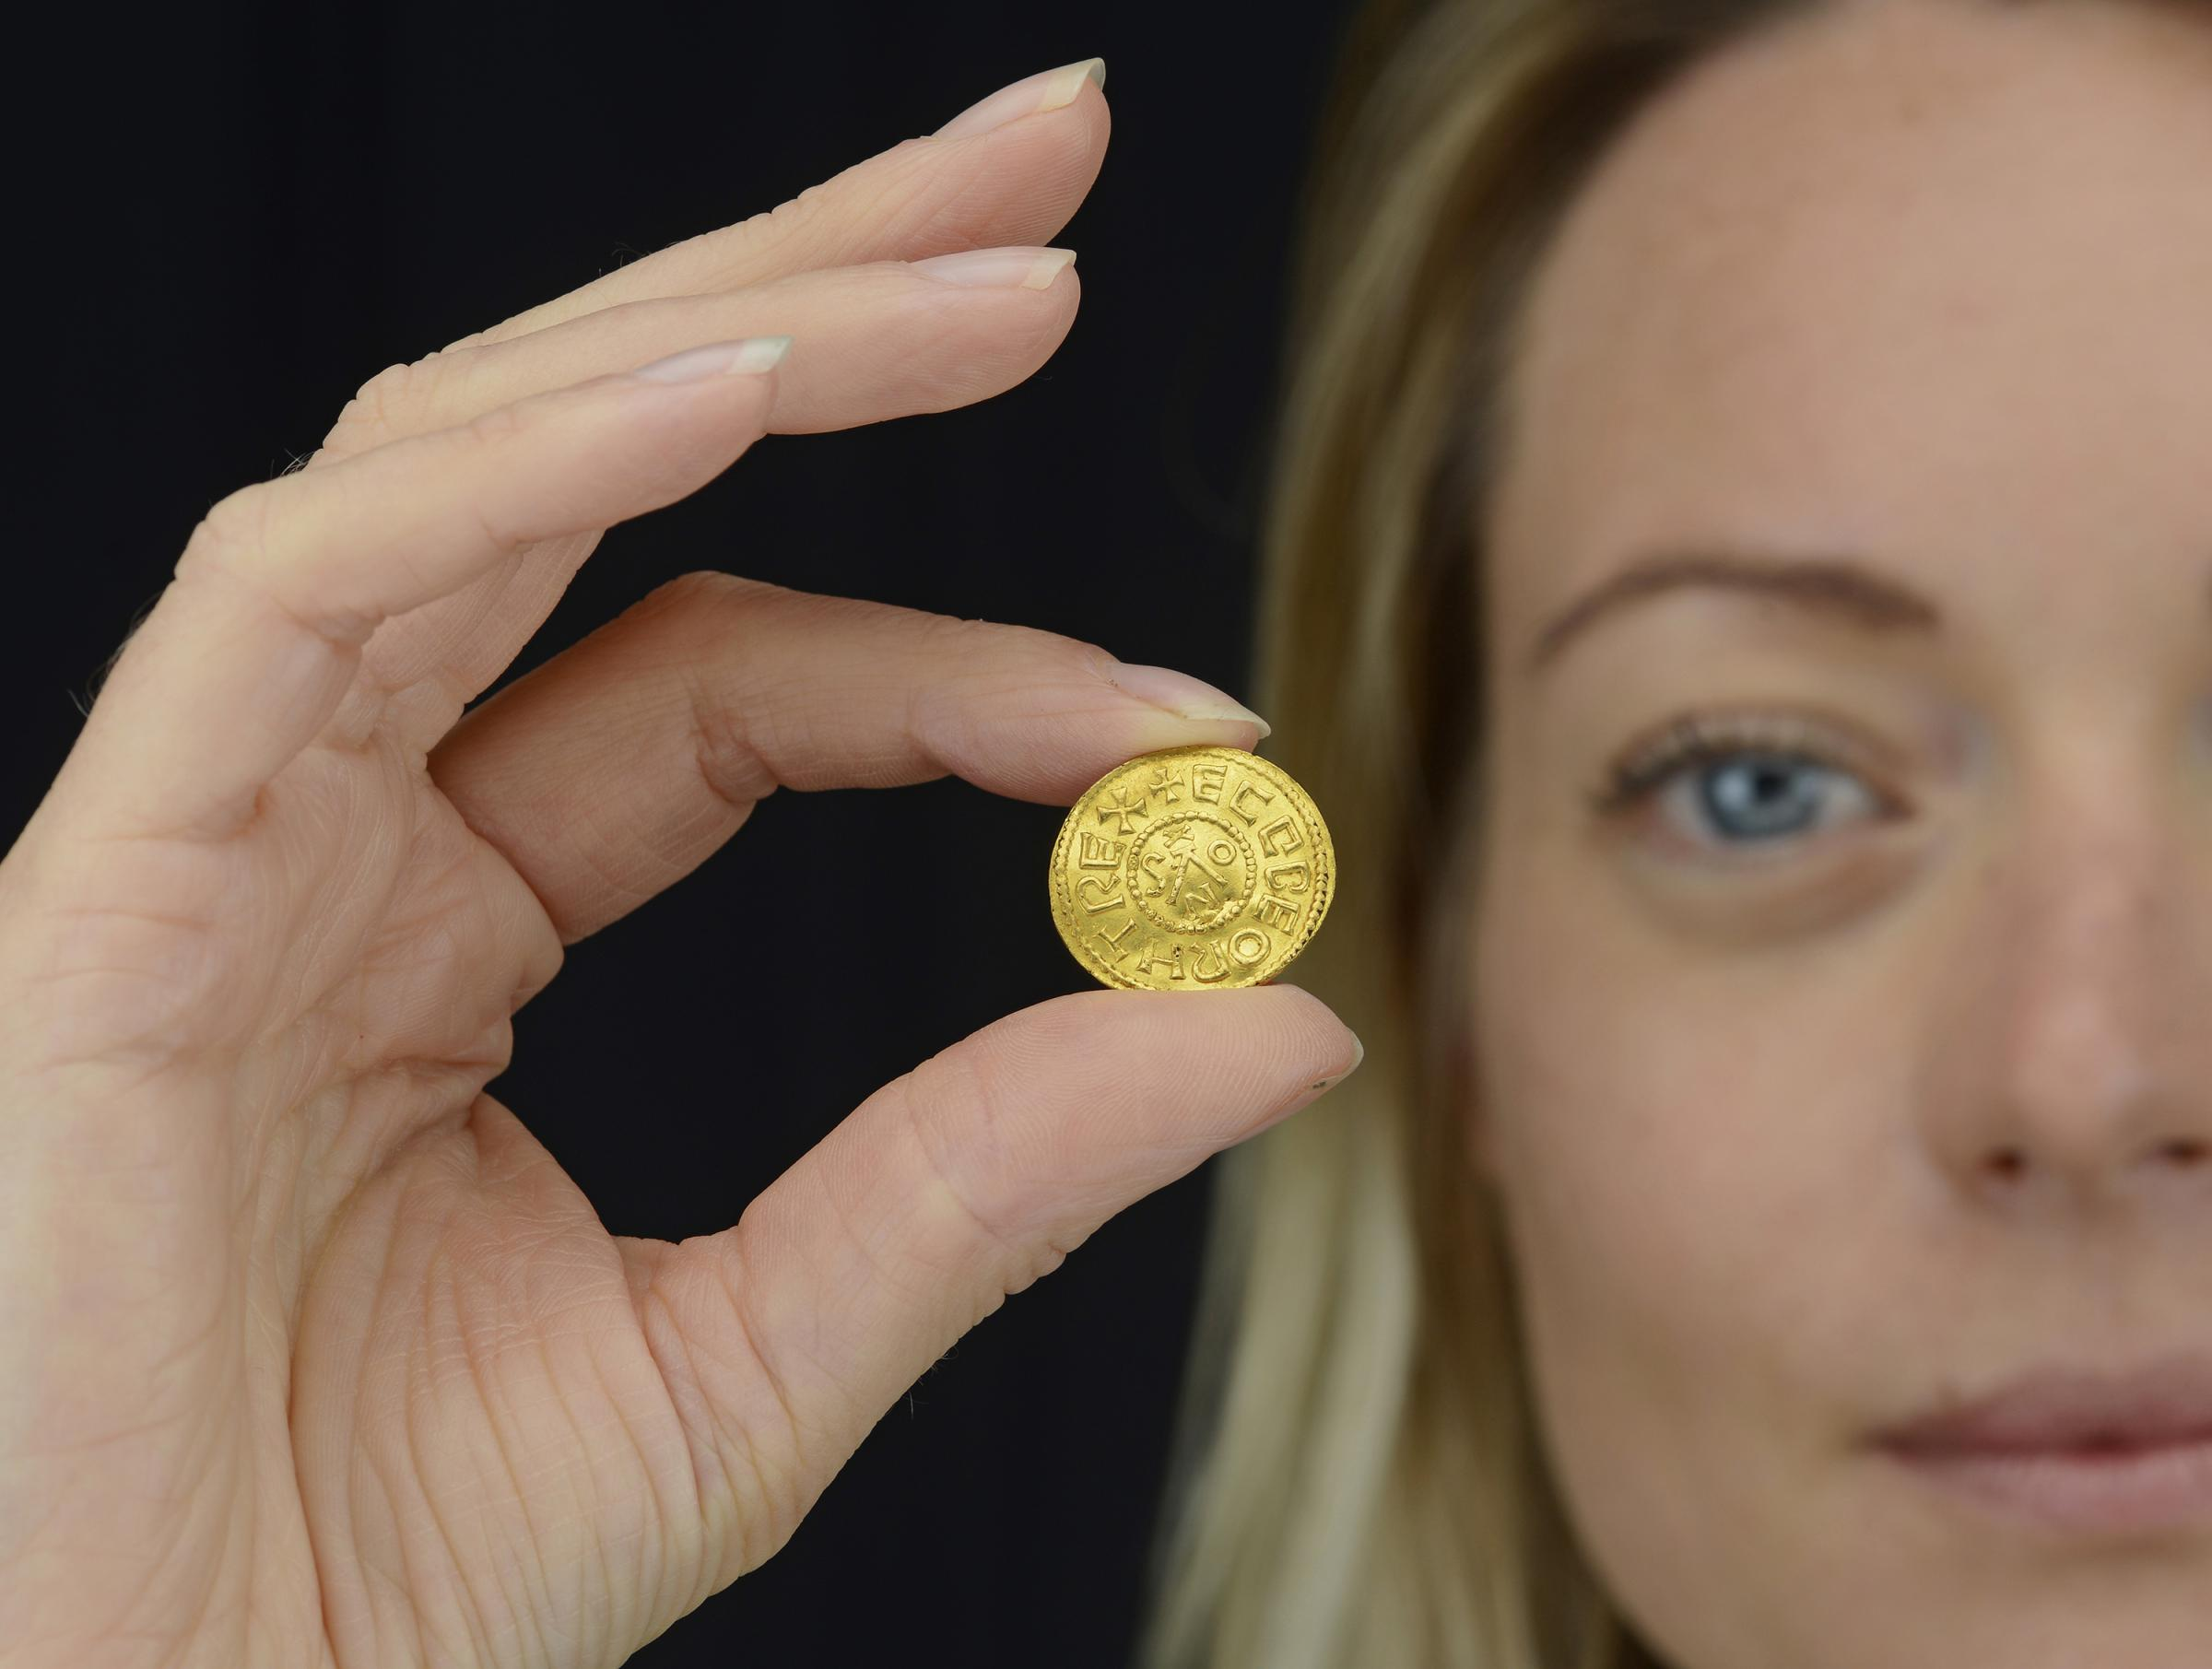 Gold coin discovered in West Dean expected to fetch up to £200k at auction